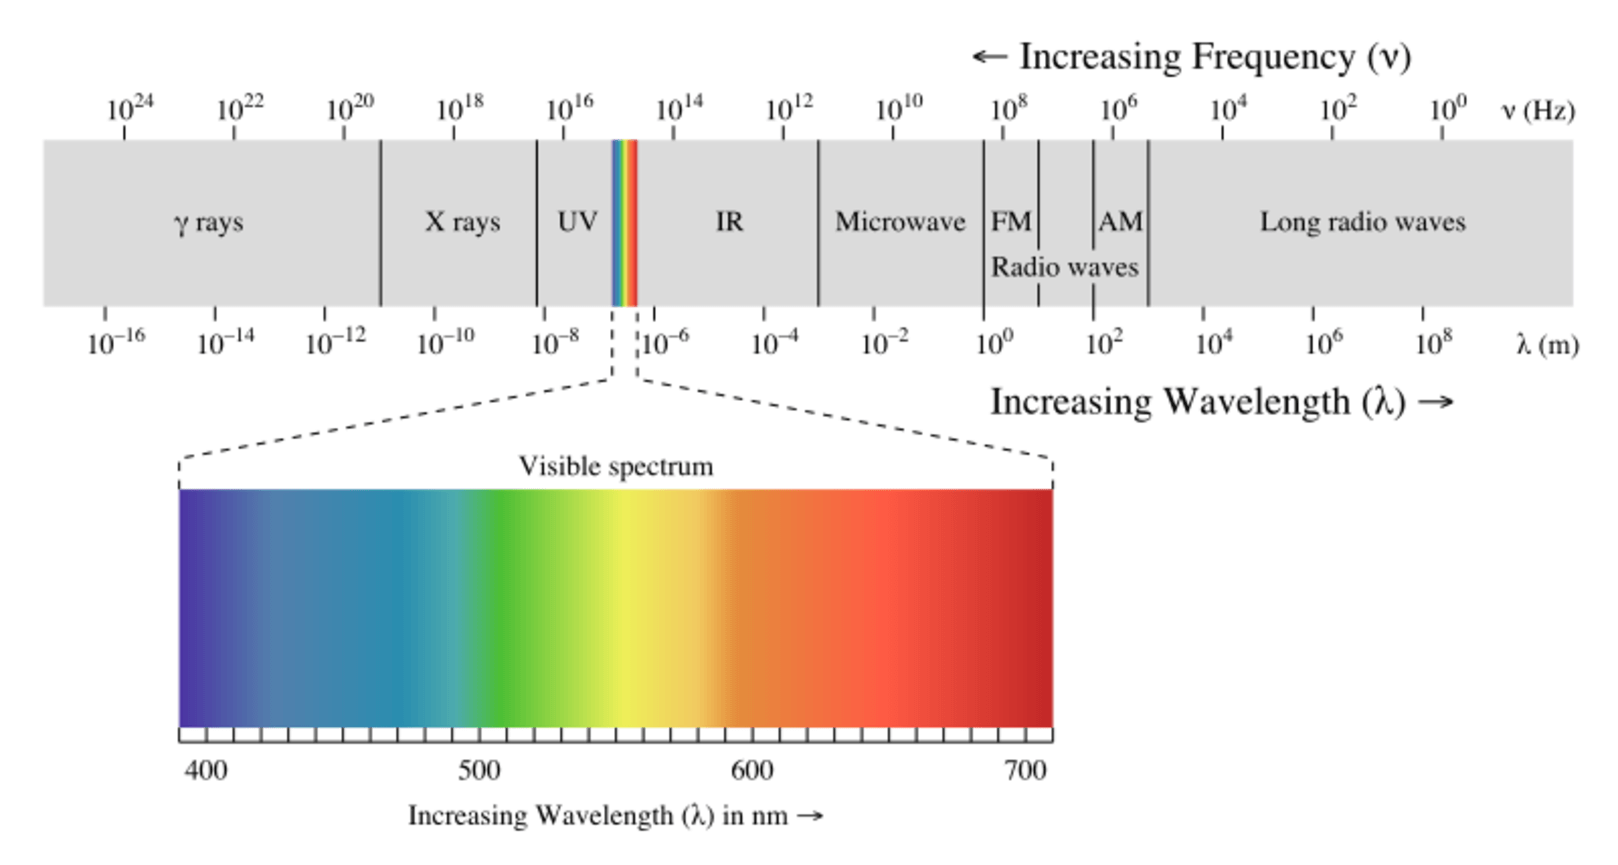 In Future The Internet Could Come Through Your Lightbulb Incandescent Light Bulb Diagram Group Picture Image By Tag Frequencies On Electromagnetic Spectrum Are Underused While To Either Side Is Congested Credit Philip Ronan Cc Sa